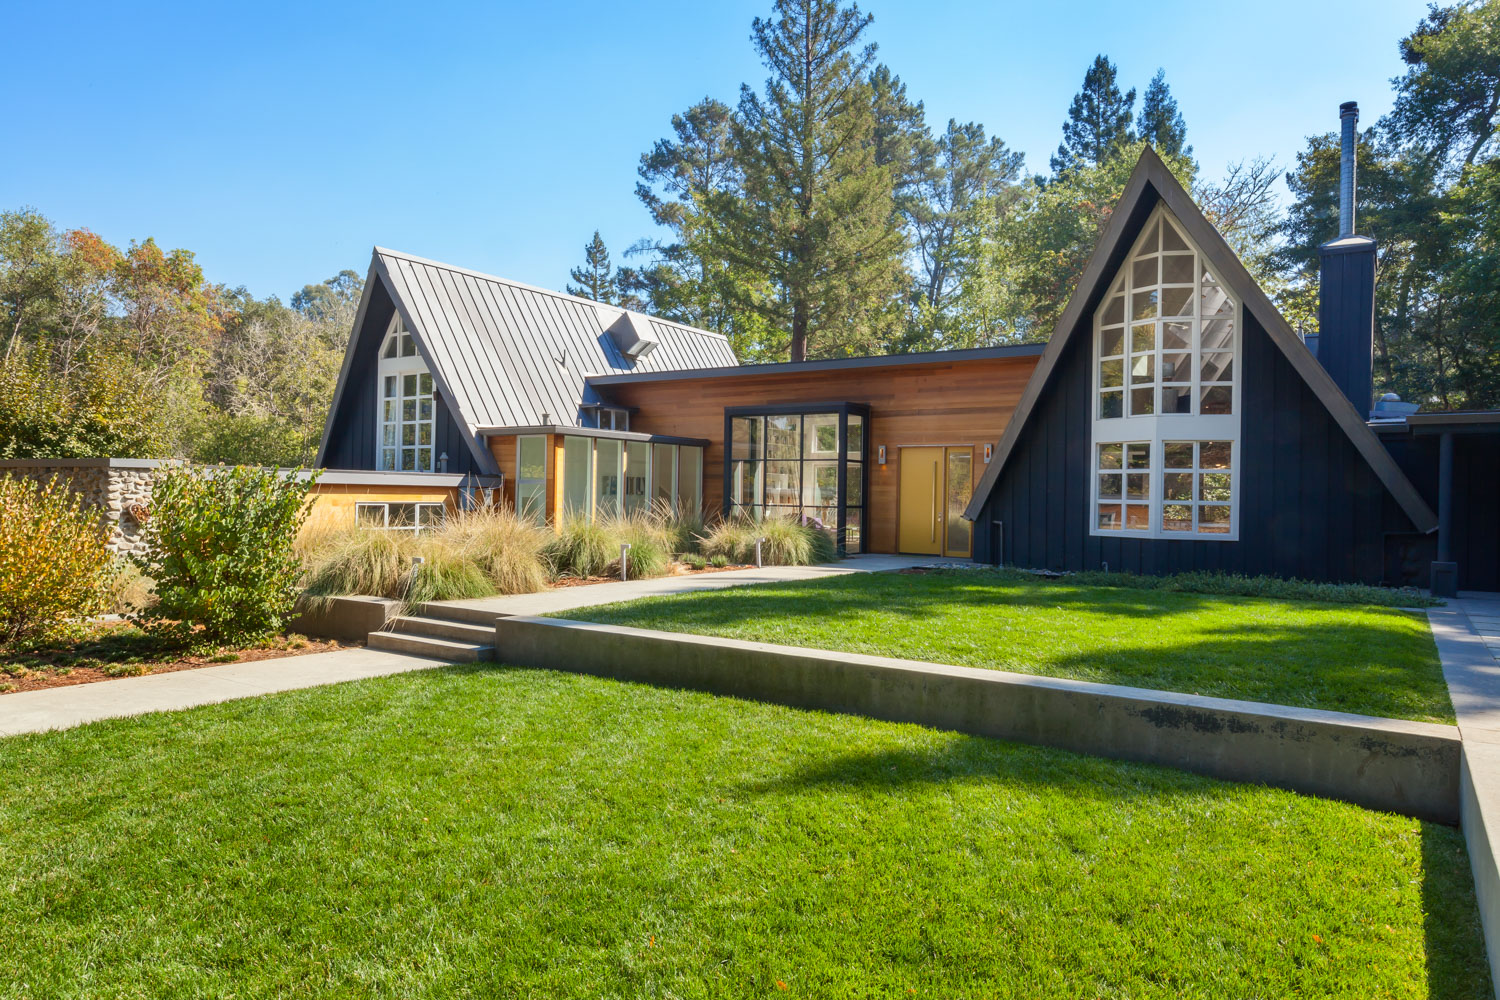 Contemporary home characterized by two A-frame structures on either end connected by flat roofed volume.